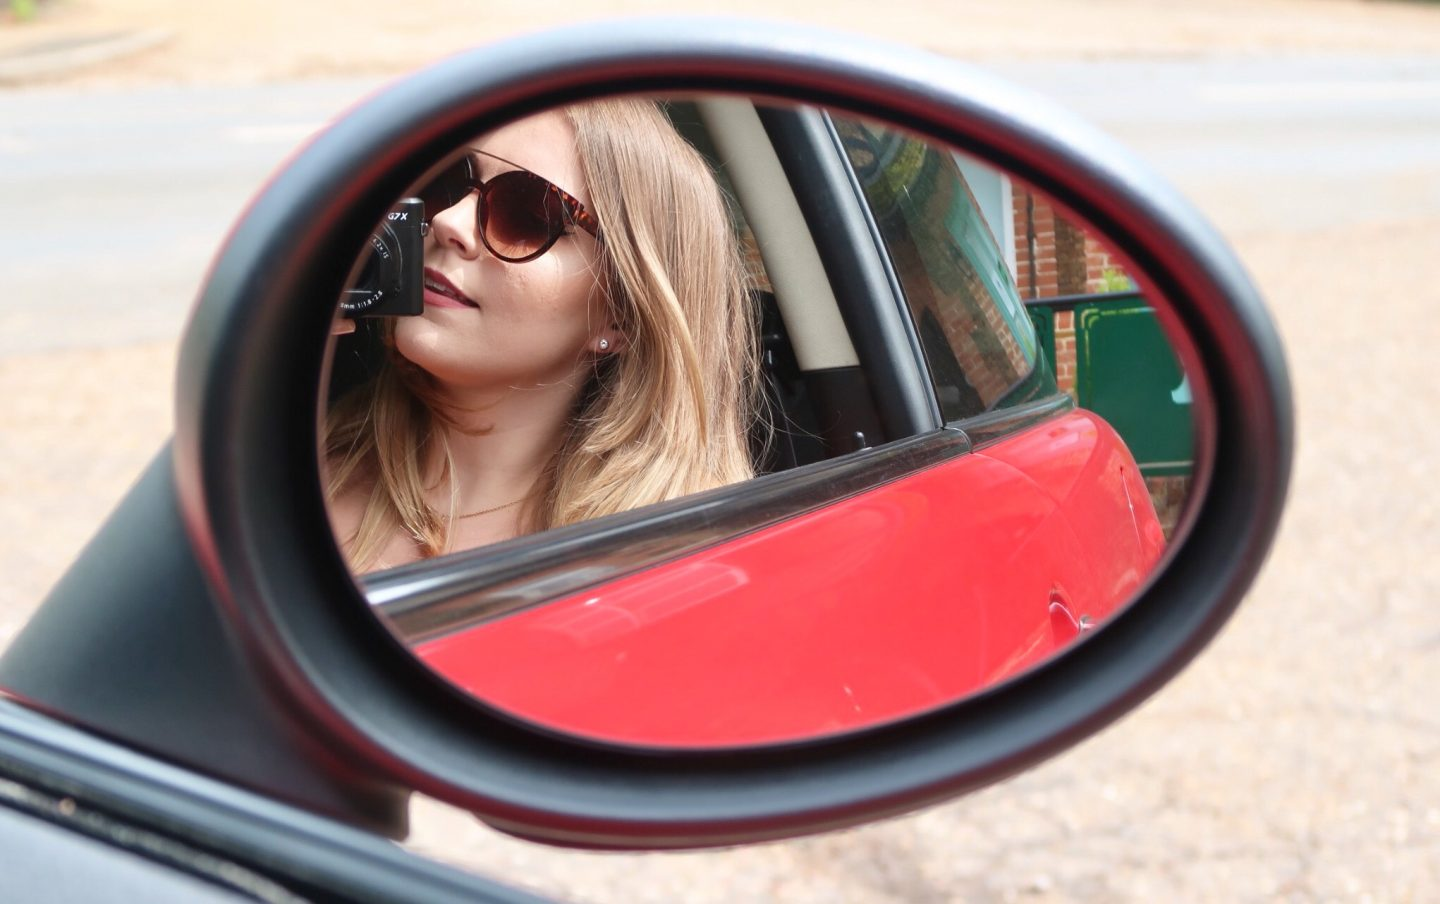 7 Things To Remember If You're A Nervous Driver